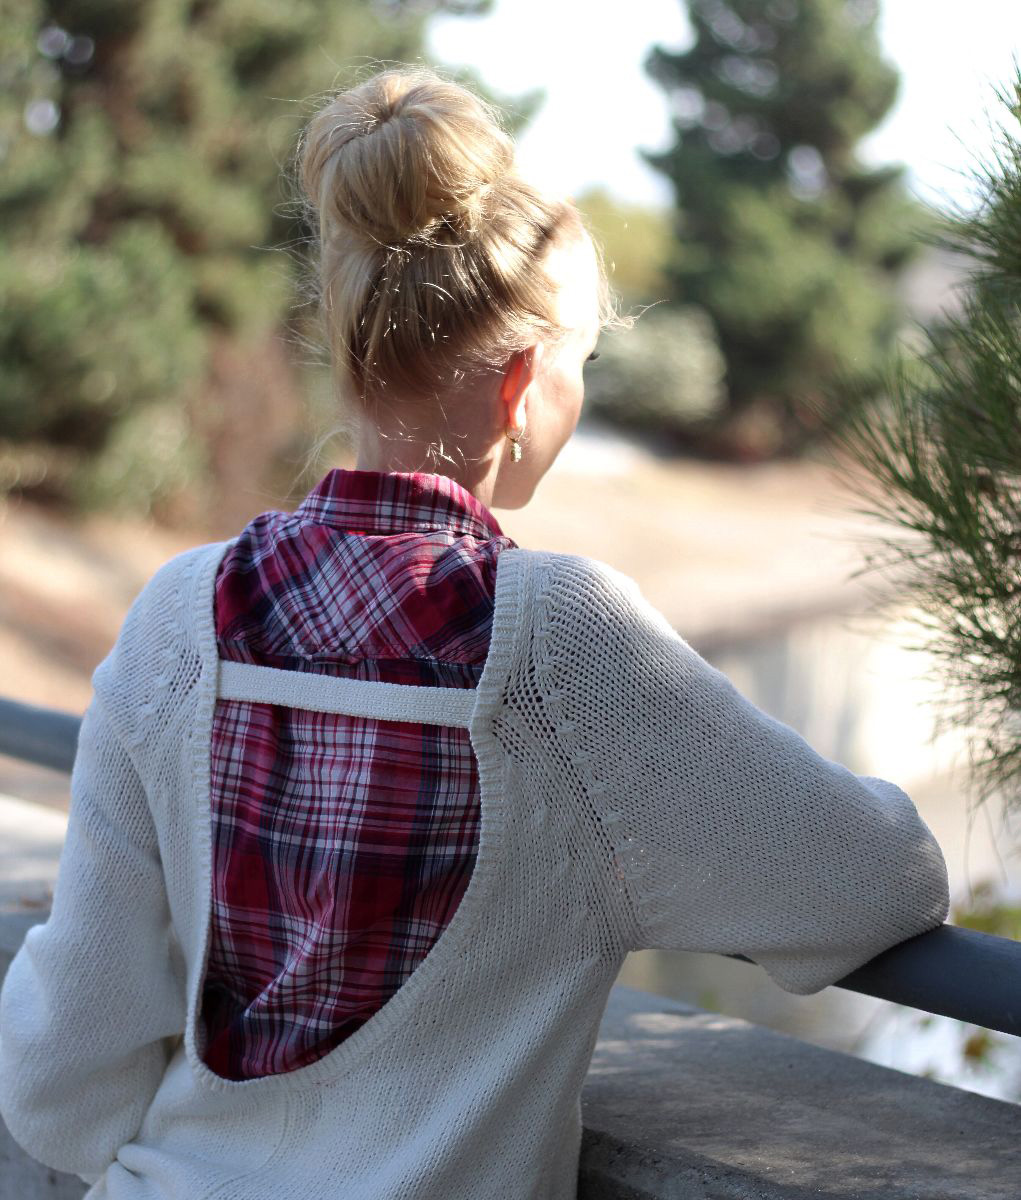 blonde hair bun, plaid shirt